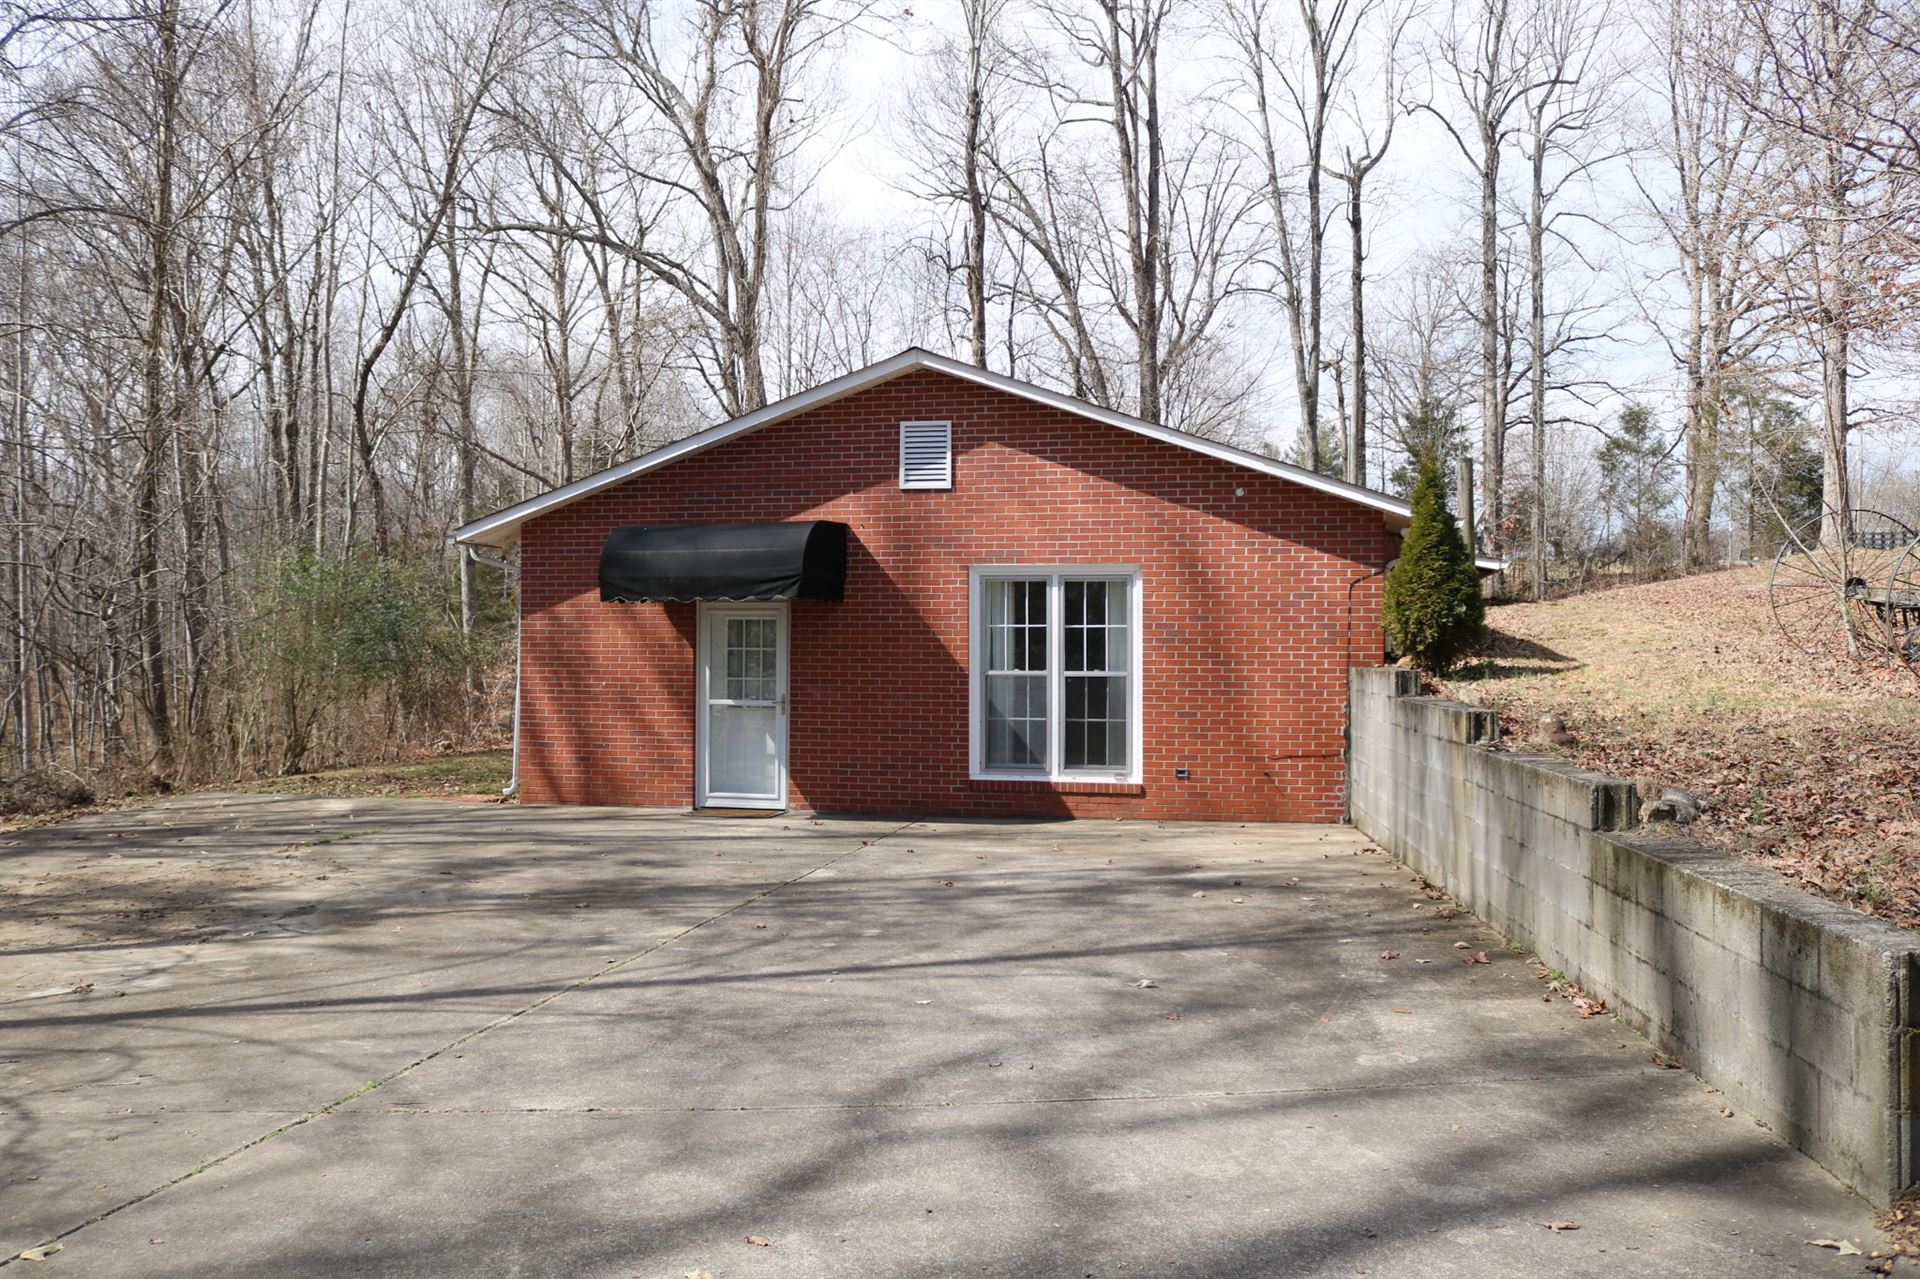 Photo of 2236 Wolfe Rd, White Bluff, TN 37187 (MLS # 2232331)